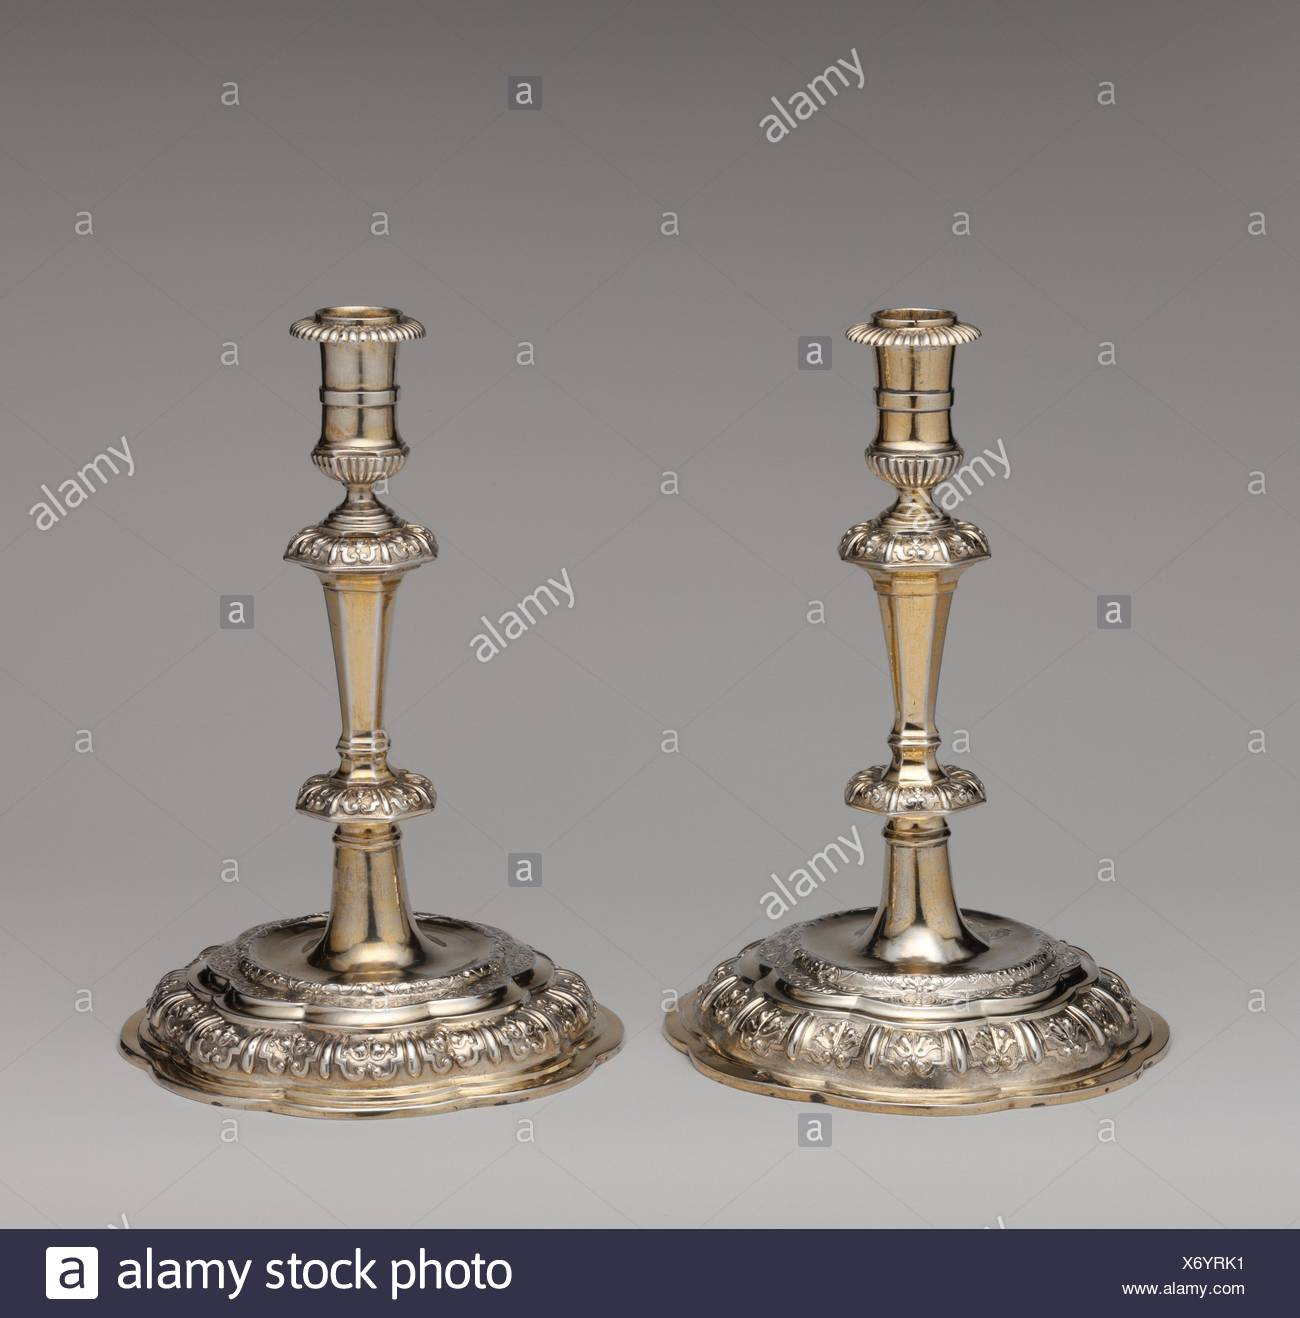 Candlestick (one of a pair). Maker: Master RW (Swedish, Upsala, early 18th century); Date: ca. 1710-20; Culture: Swedish, Uppsala; Medium: Silver, - Stock Image